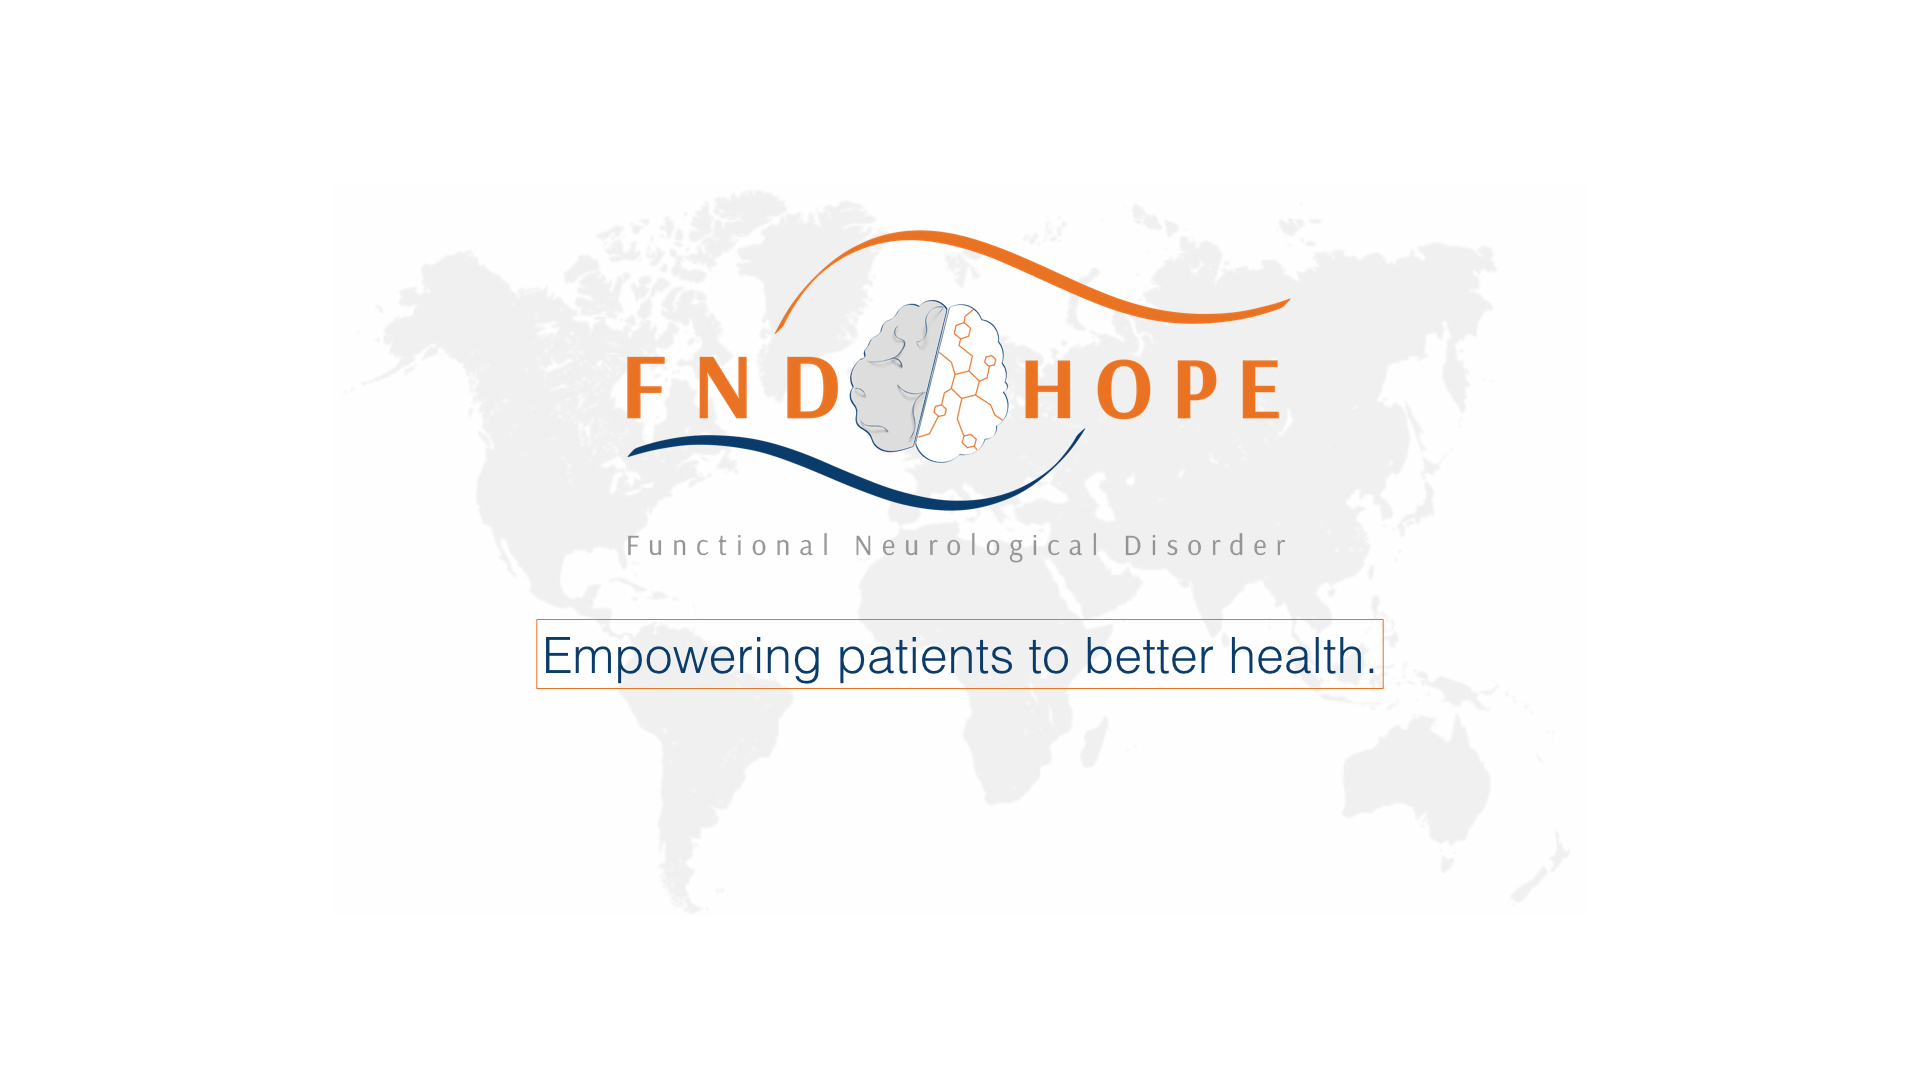 FND Hope UK Board Members